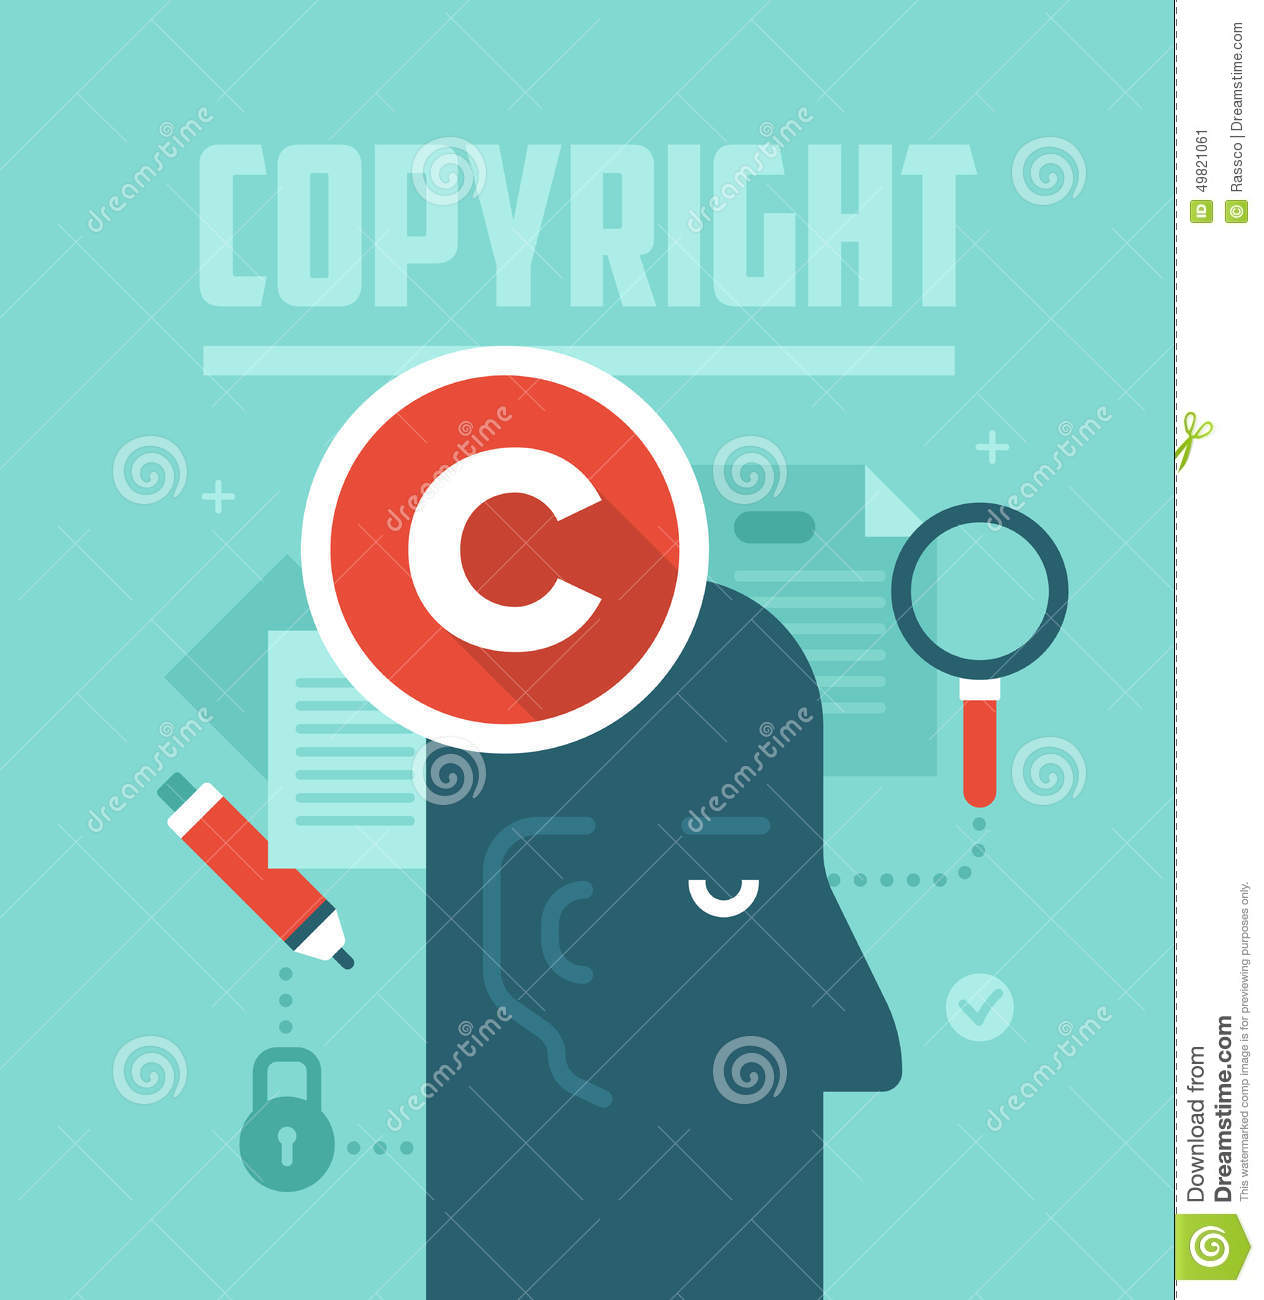 Intellectual Property Protection: Copyrighting Concept Stock Vector. Illustration Of Right